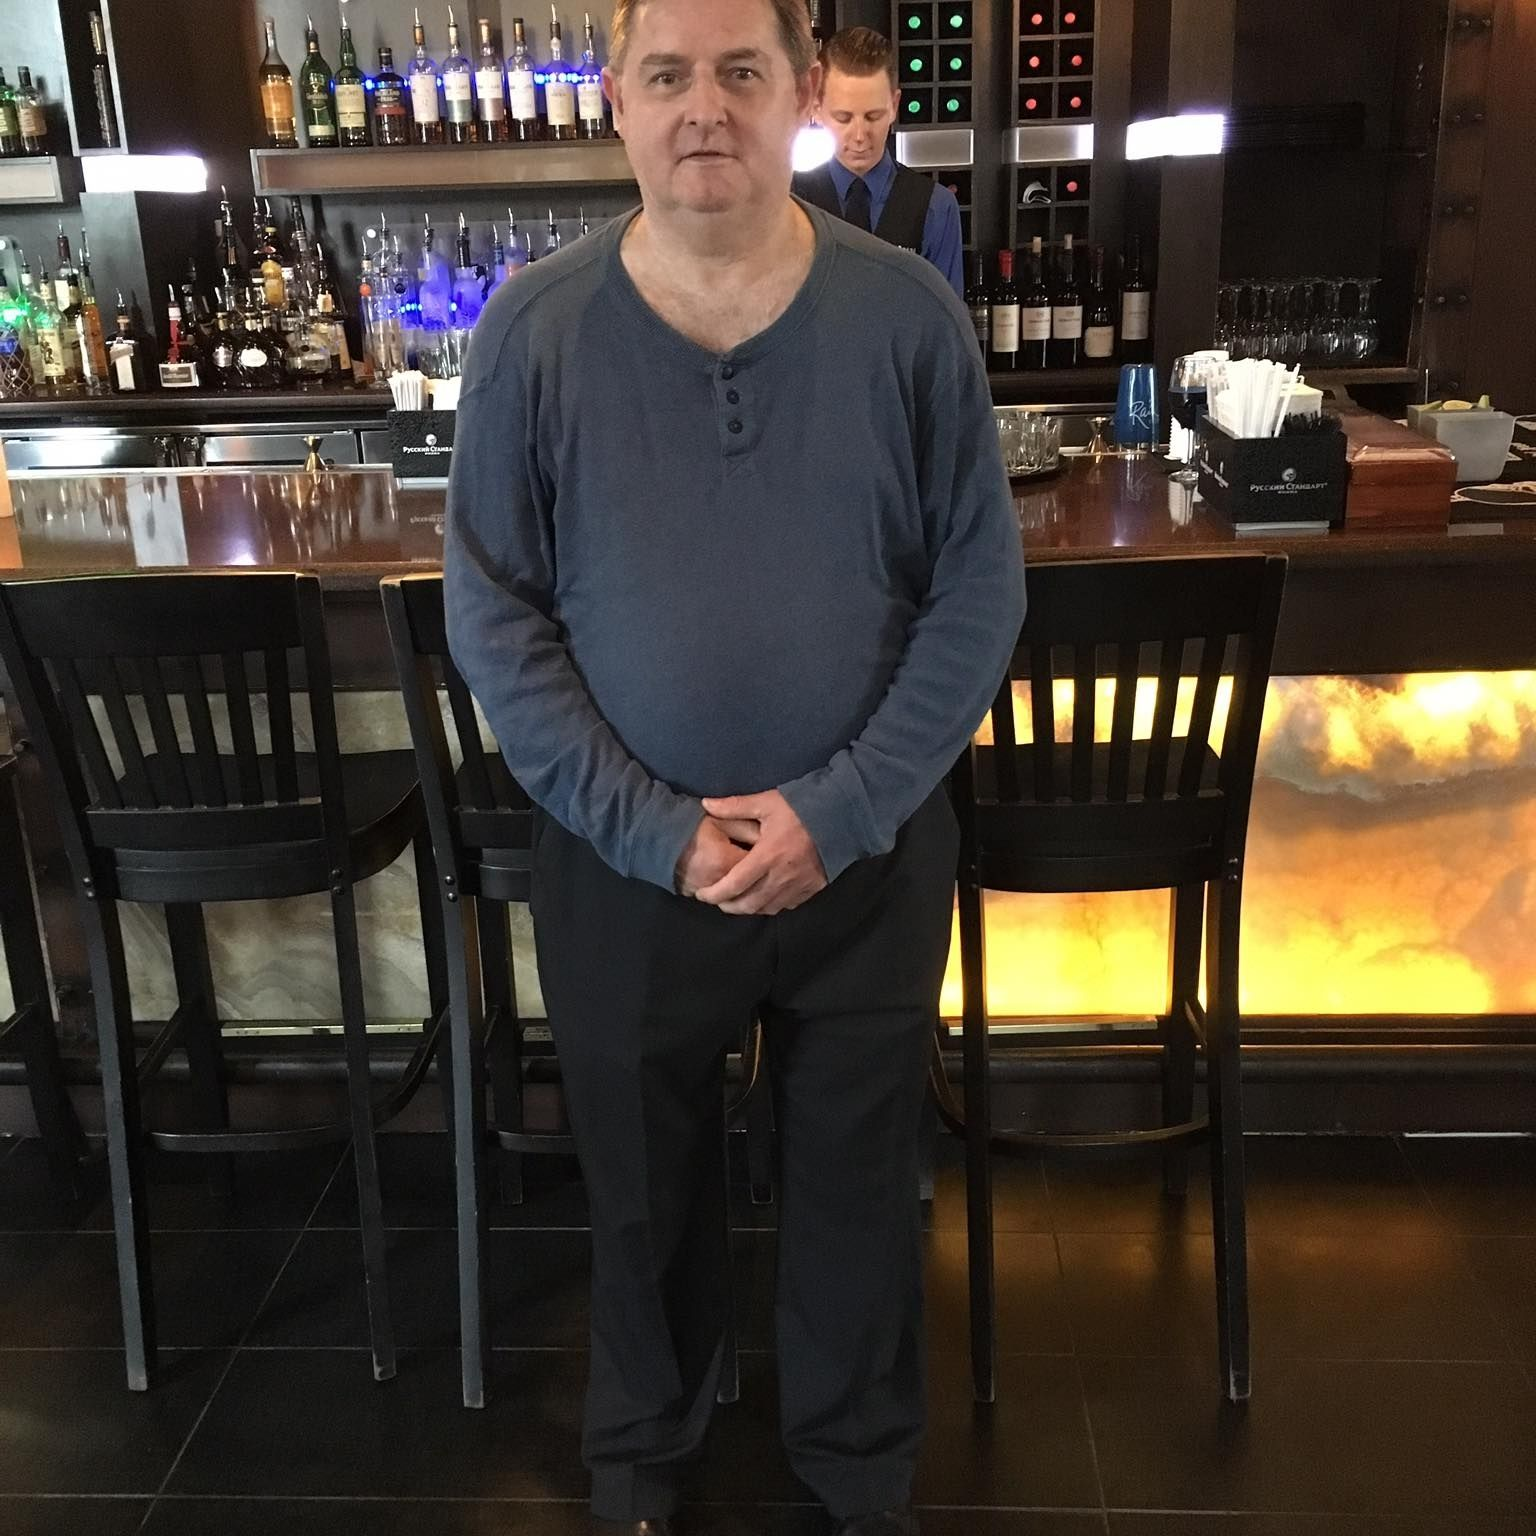 michael mature singles This is a fun way for seasoned singles to mingle, make some new friends and enjoy life we are looking for responsible, reliable and respectable adults.